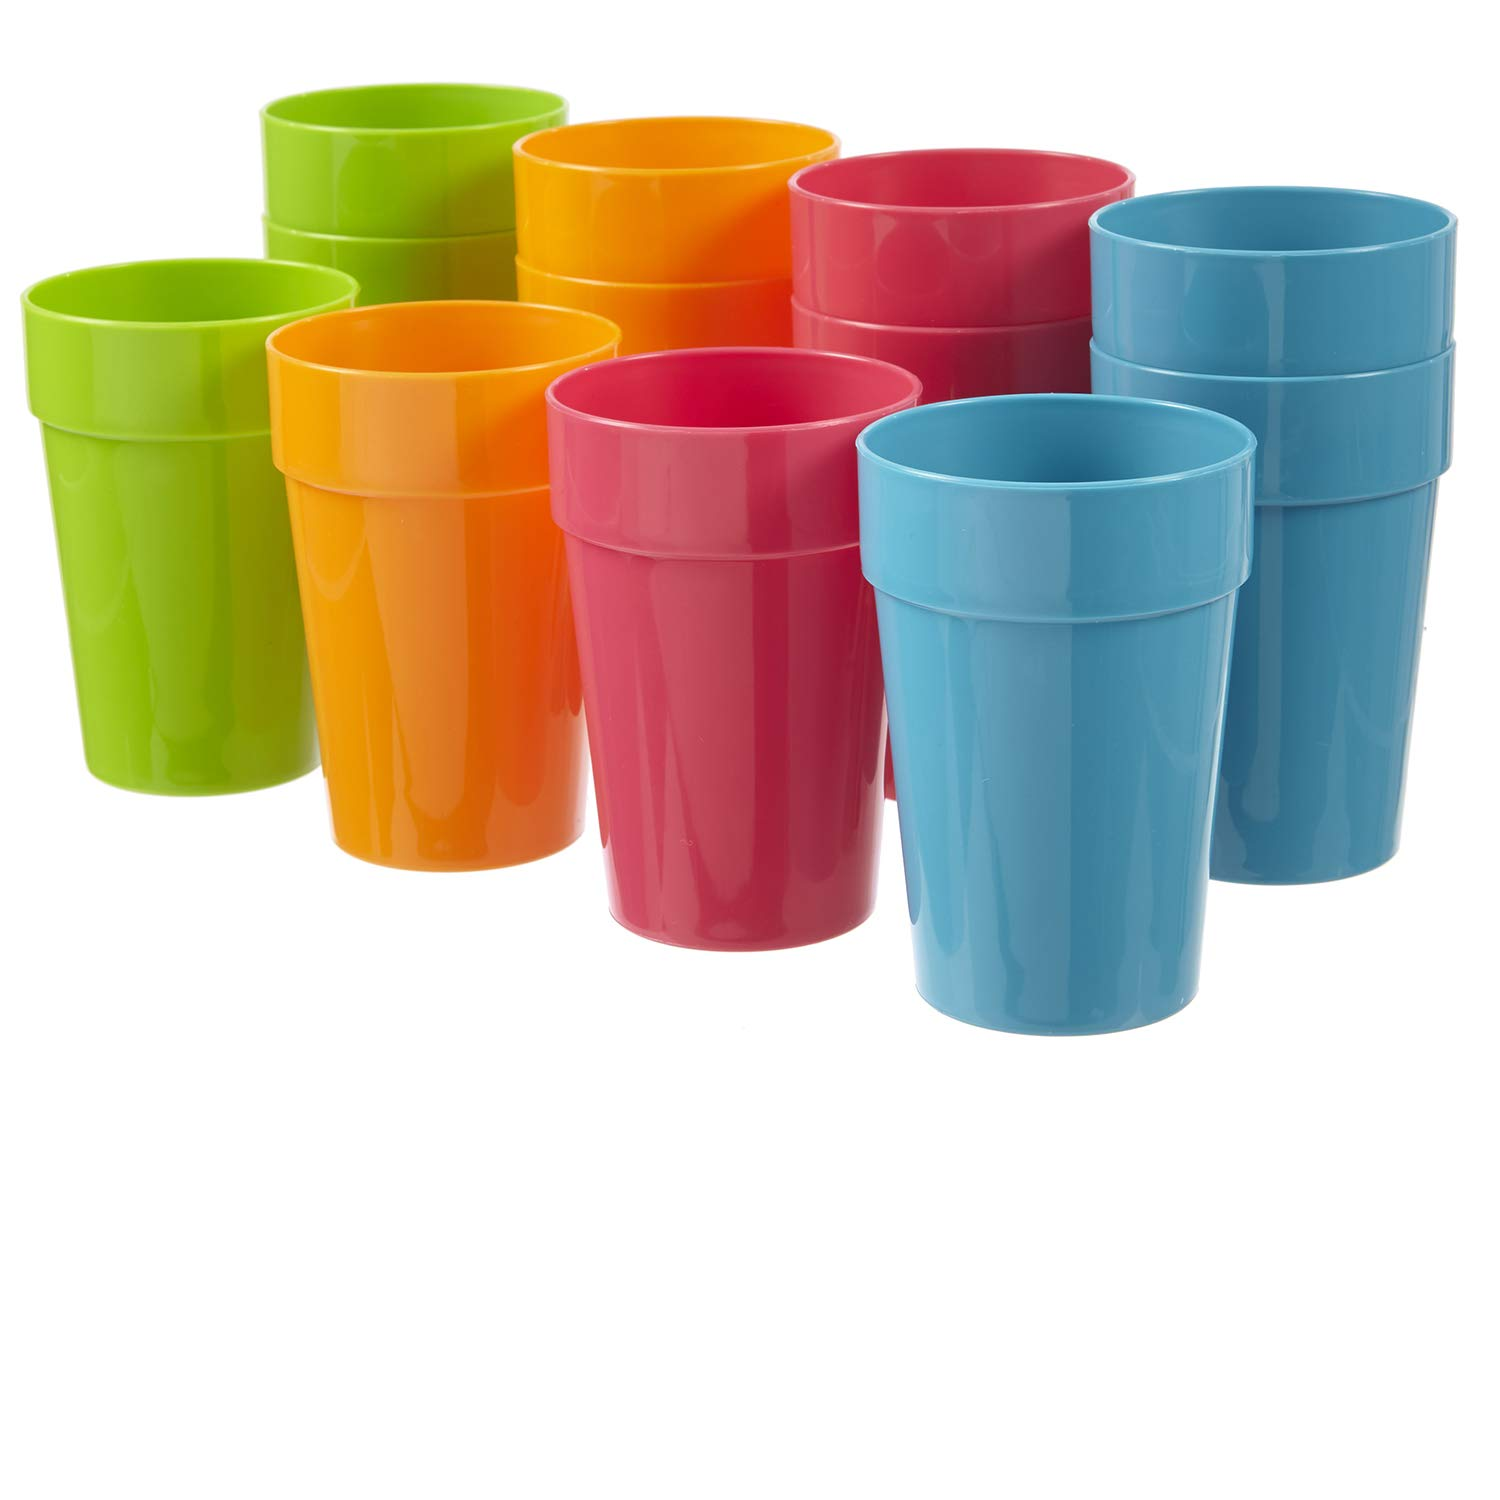 Harmony 10-ounce Juice Cups | set of 12 in 4 Calypso Colors by US Acrylic